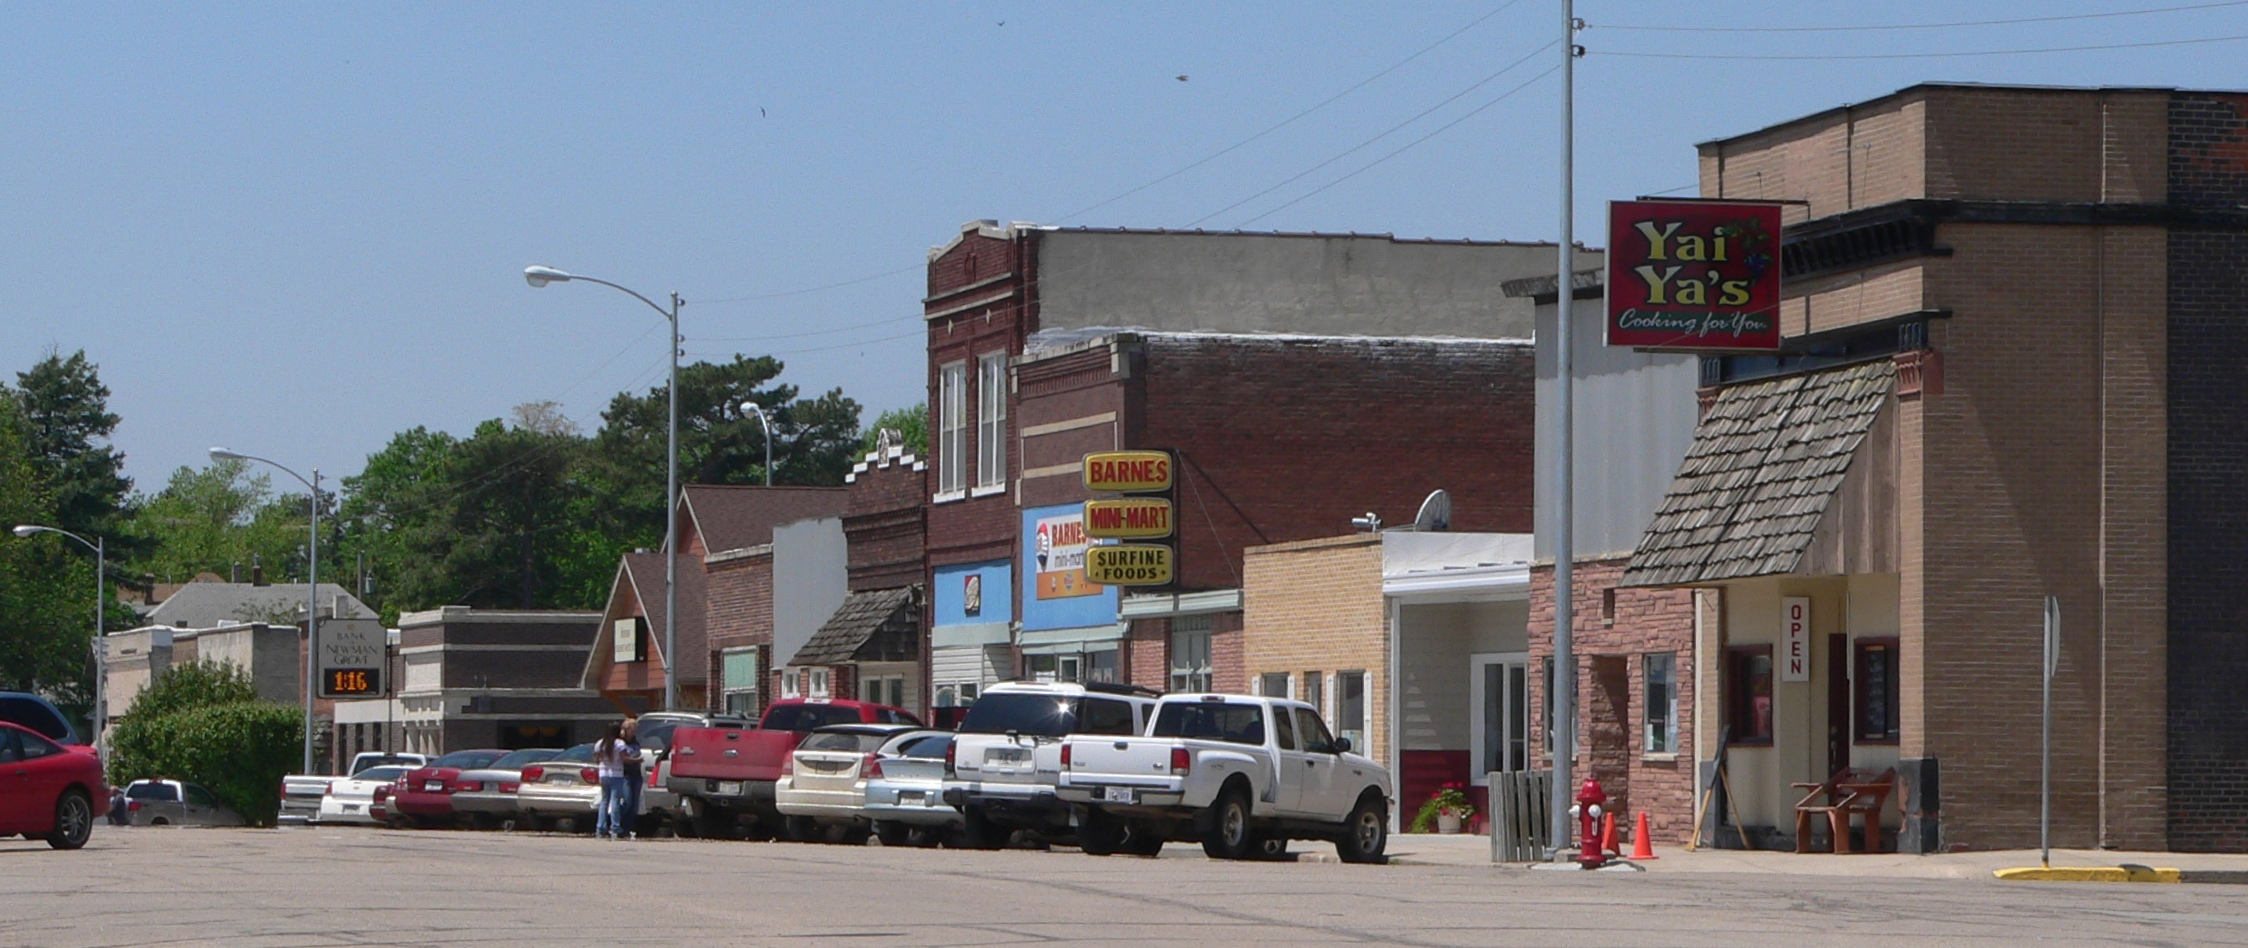 10 Small Towns In Nebraska Where Life Is Simple